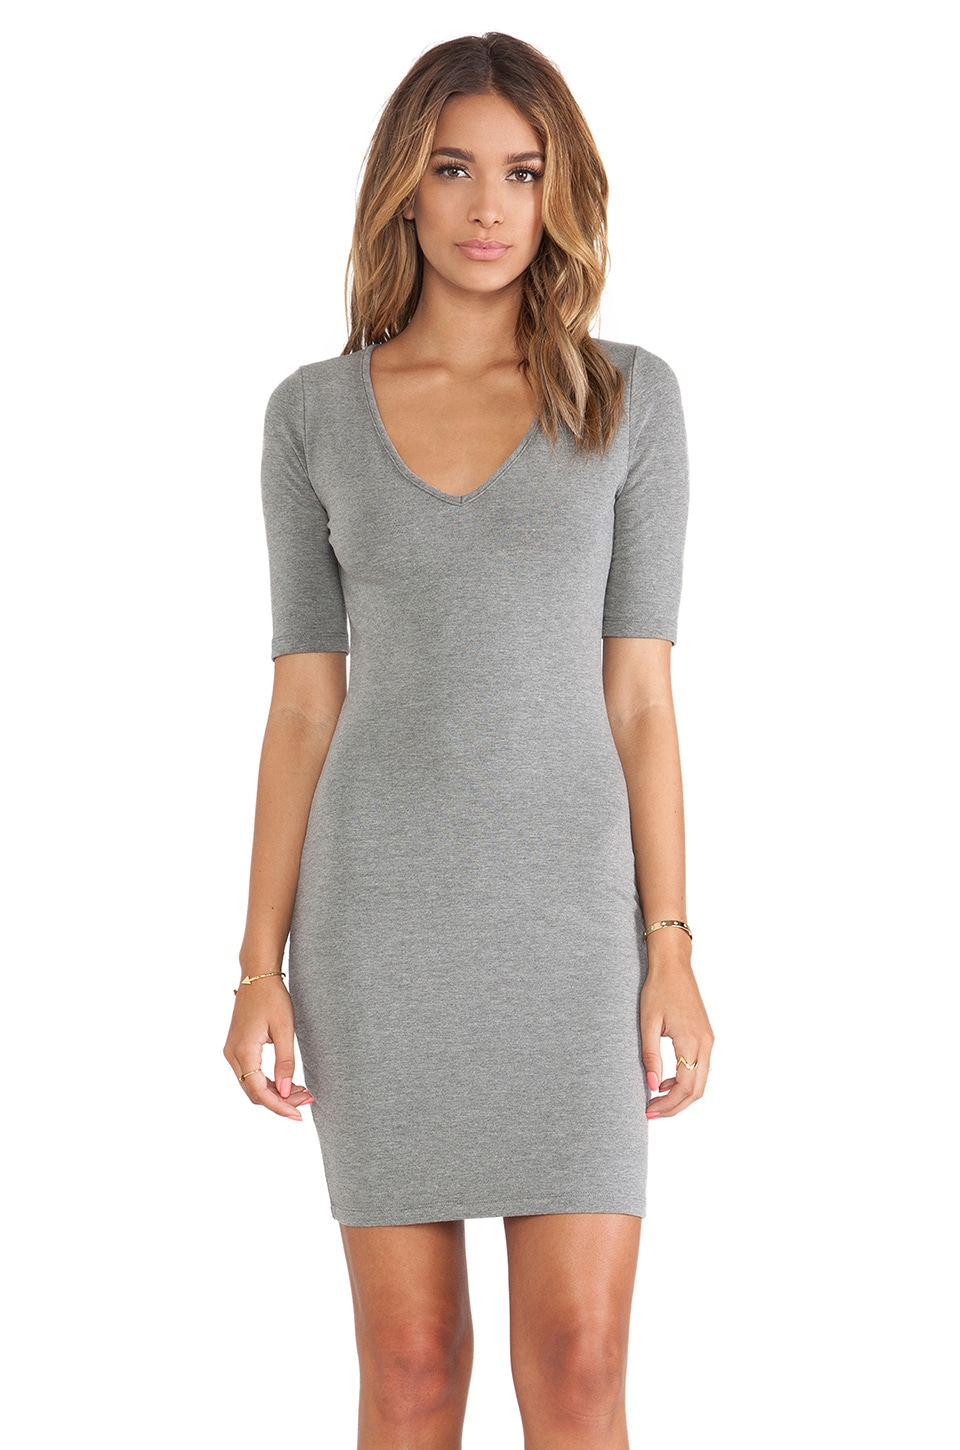 Saint Grace Sweet V Mini Dress in Ashes